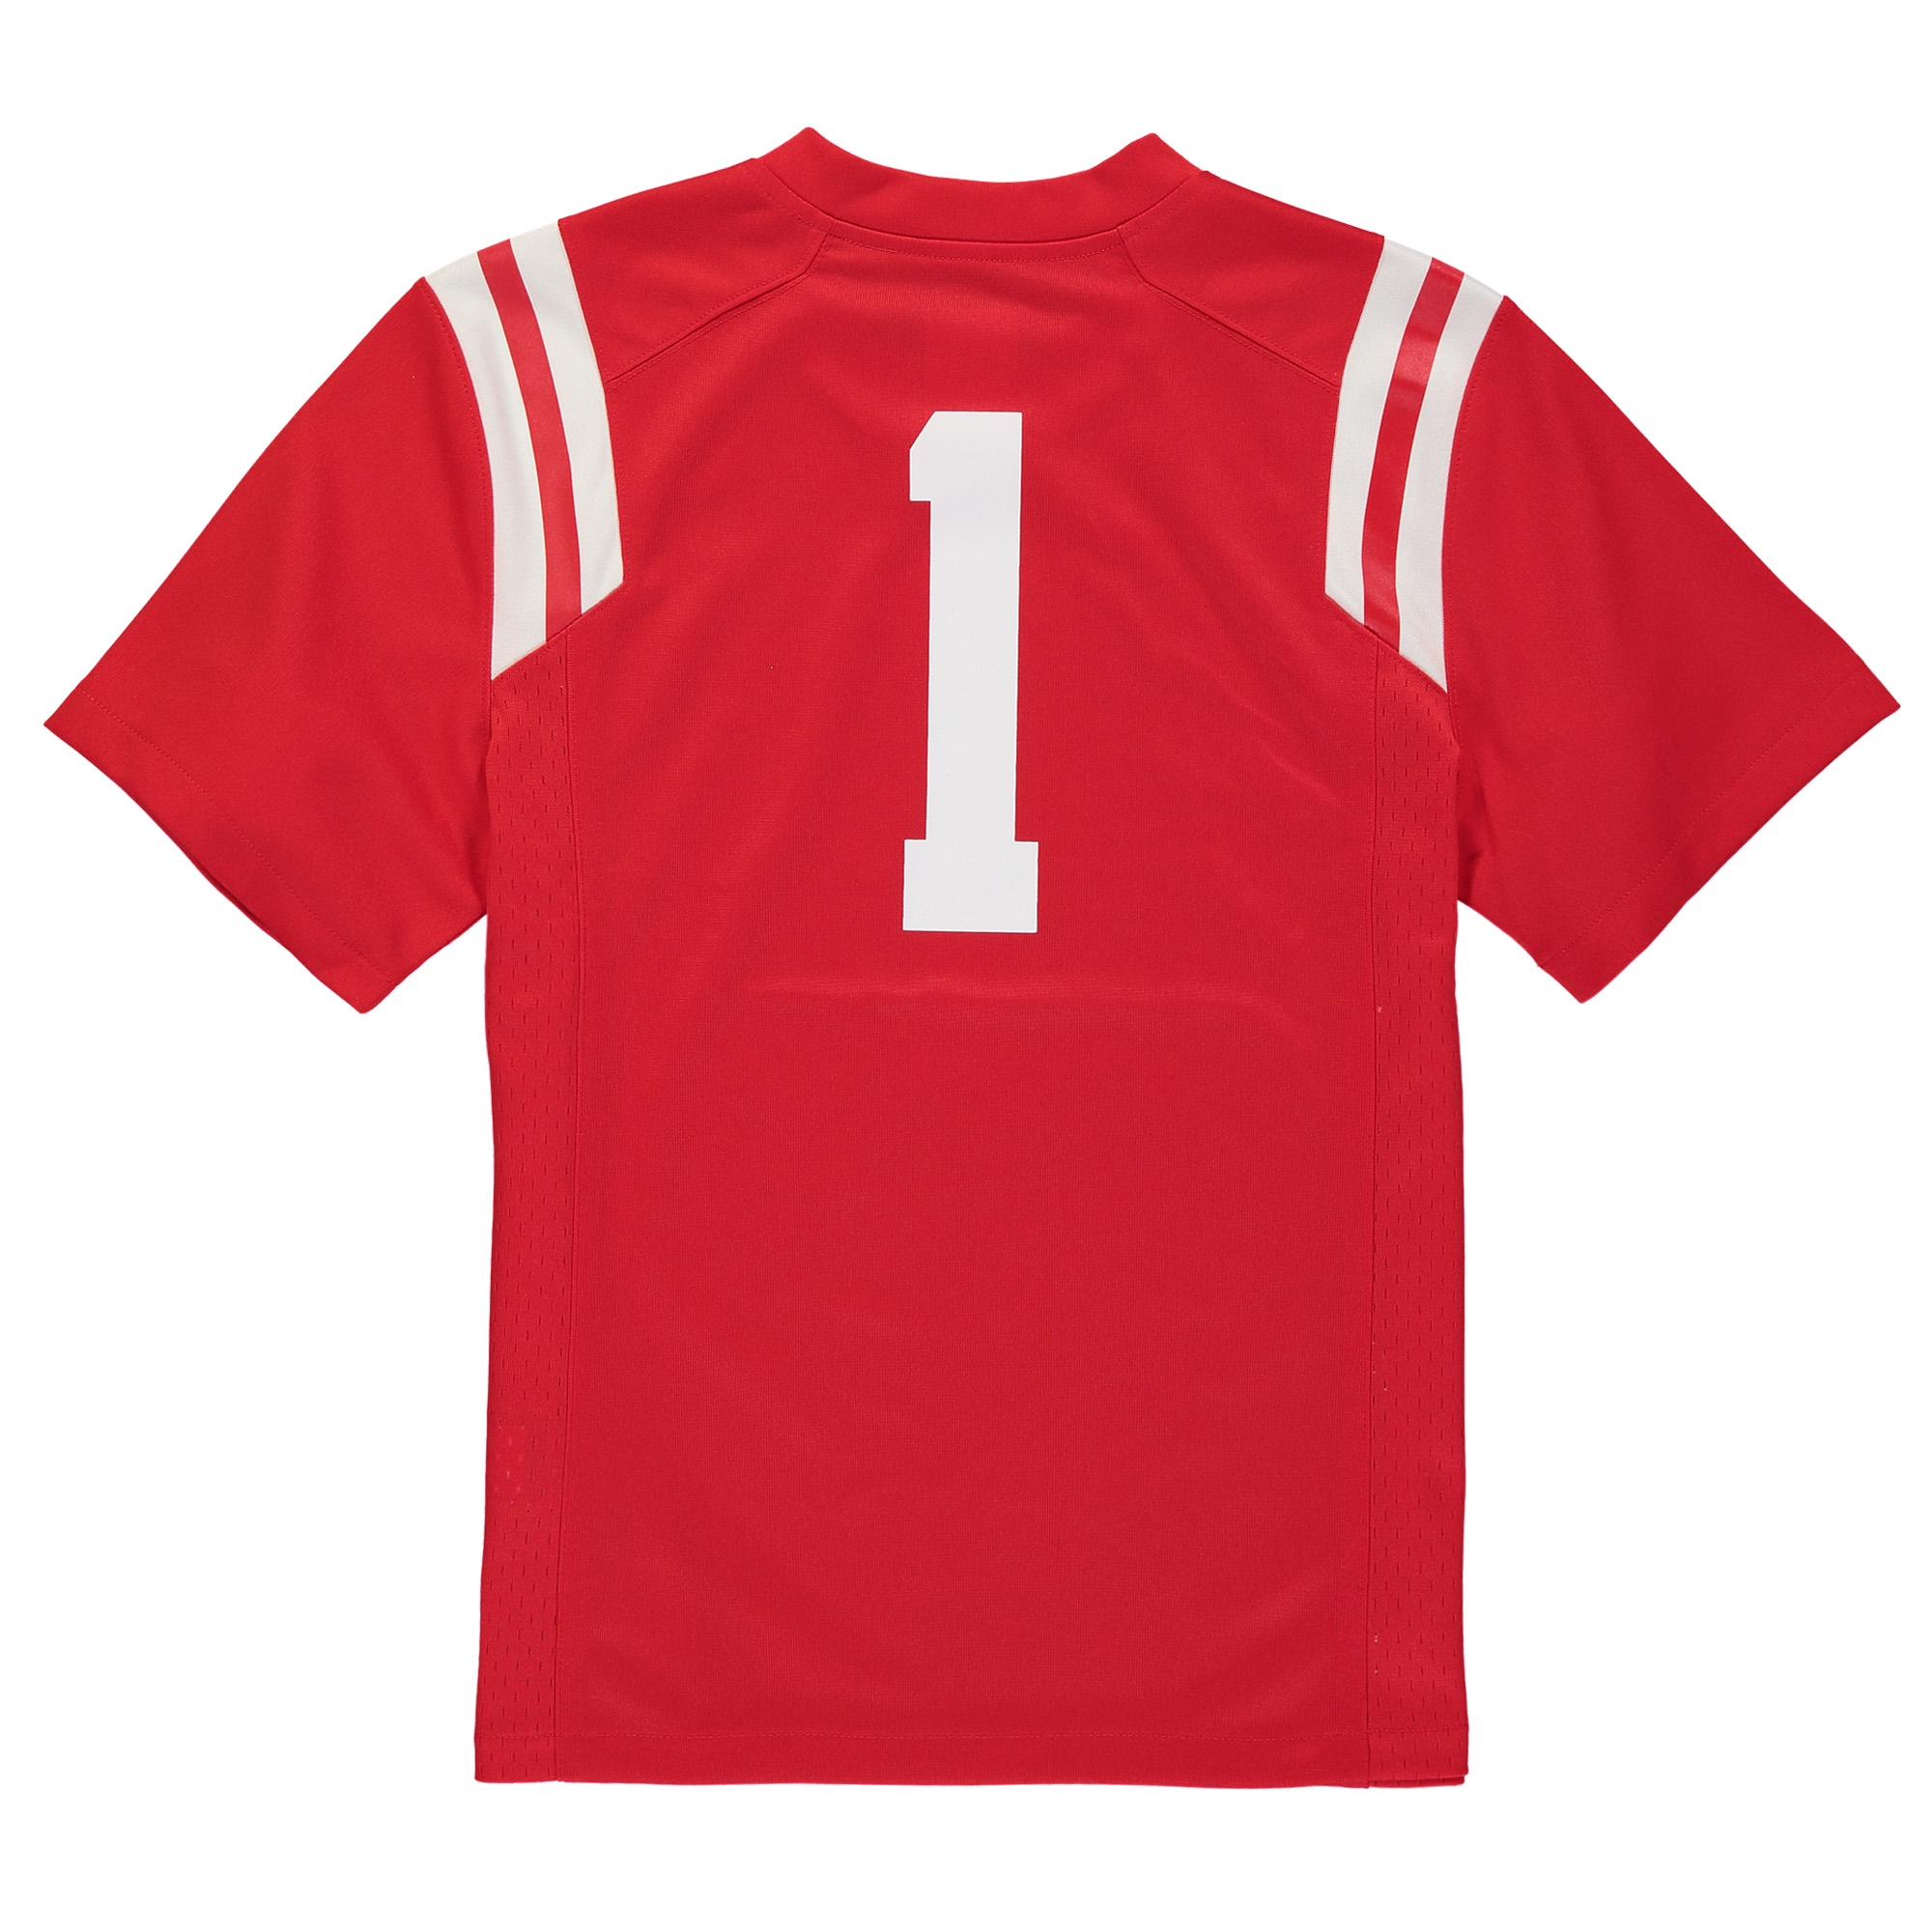 new concept 64029 de1e6 #1 Ole Miss Rebels Nike Youth Replica Football Jersey - Red